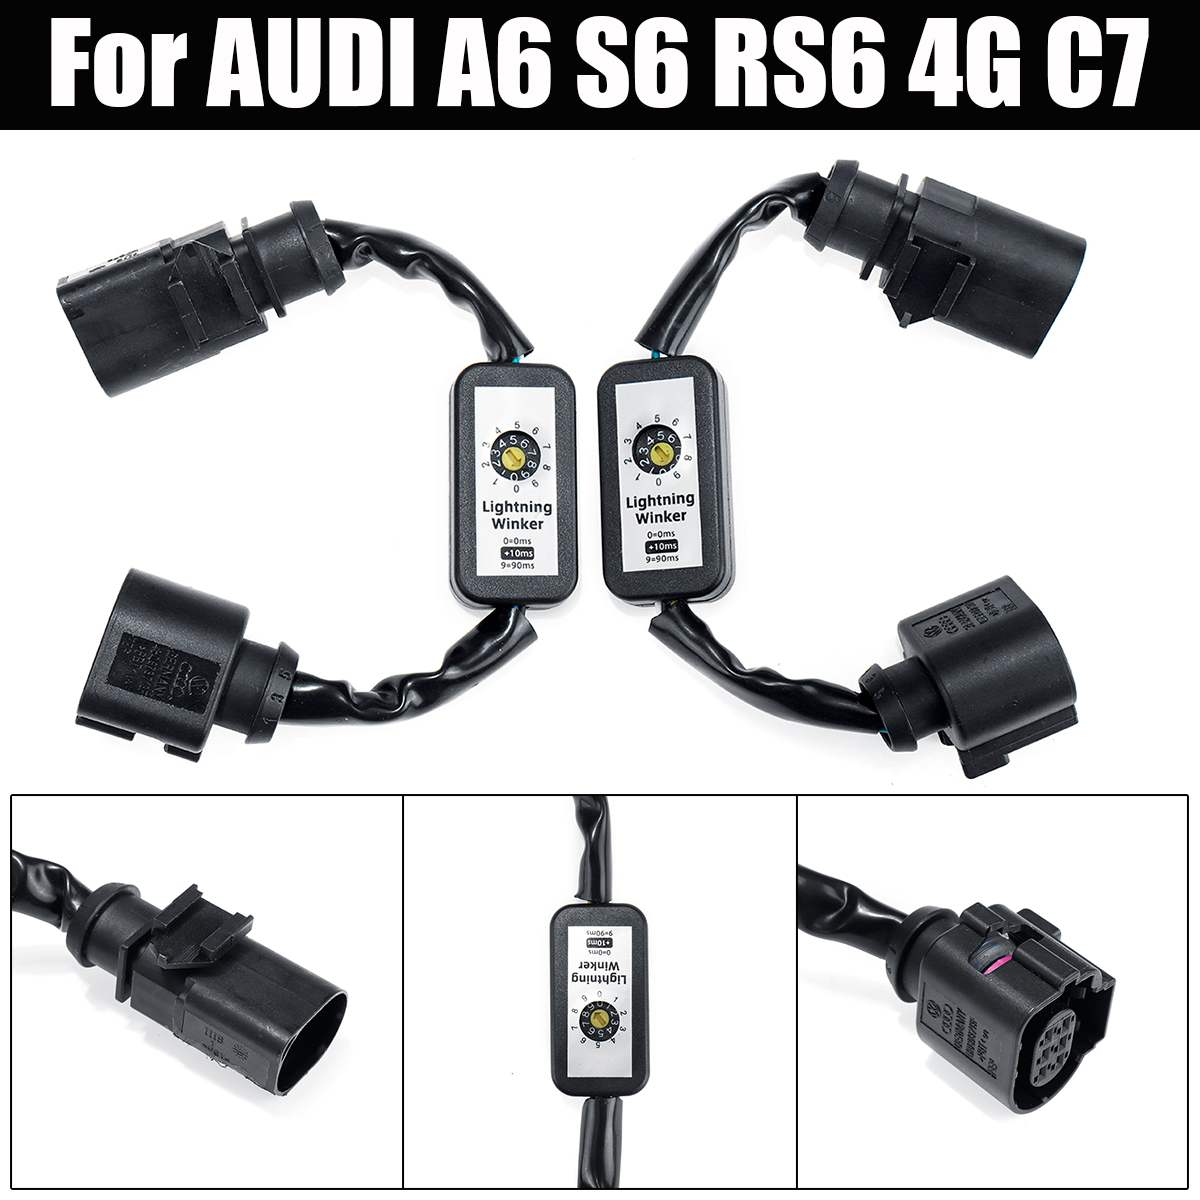 2x Dynamic Turn Signal Indicator LED Taillight Add on Module Cable Wire Harness For AUDI A6 S6 RS6 4G C7 Left&Right Tail Light